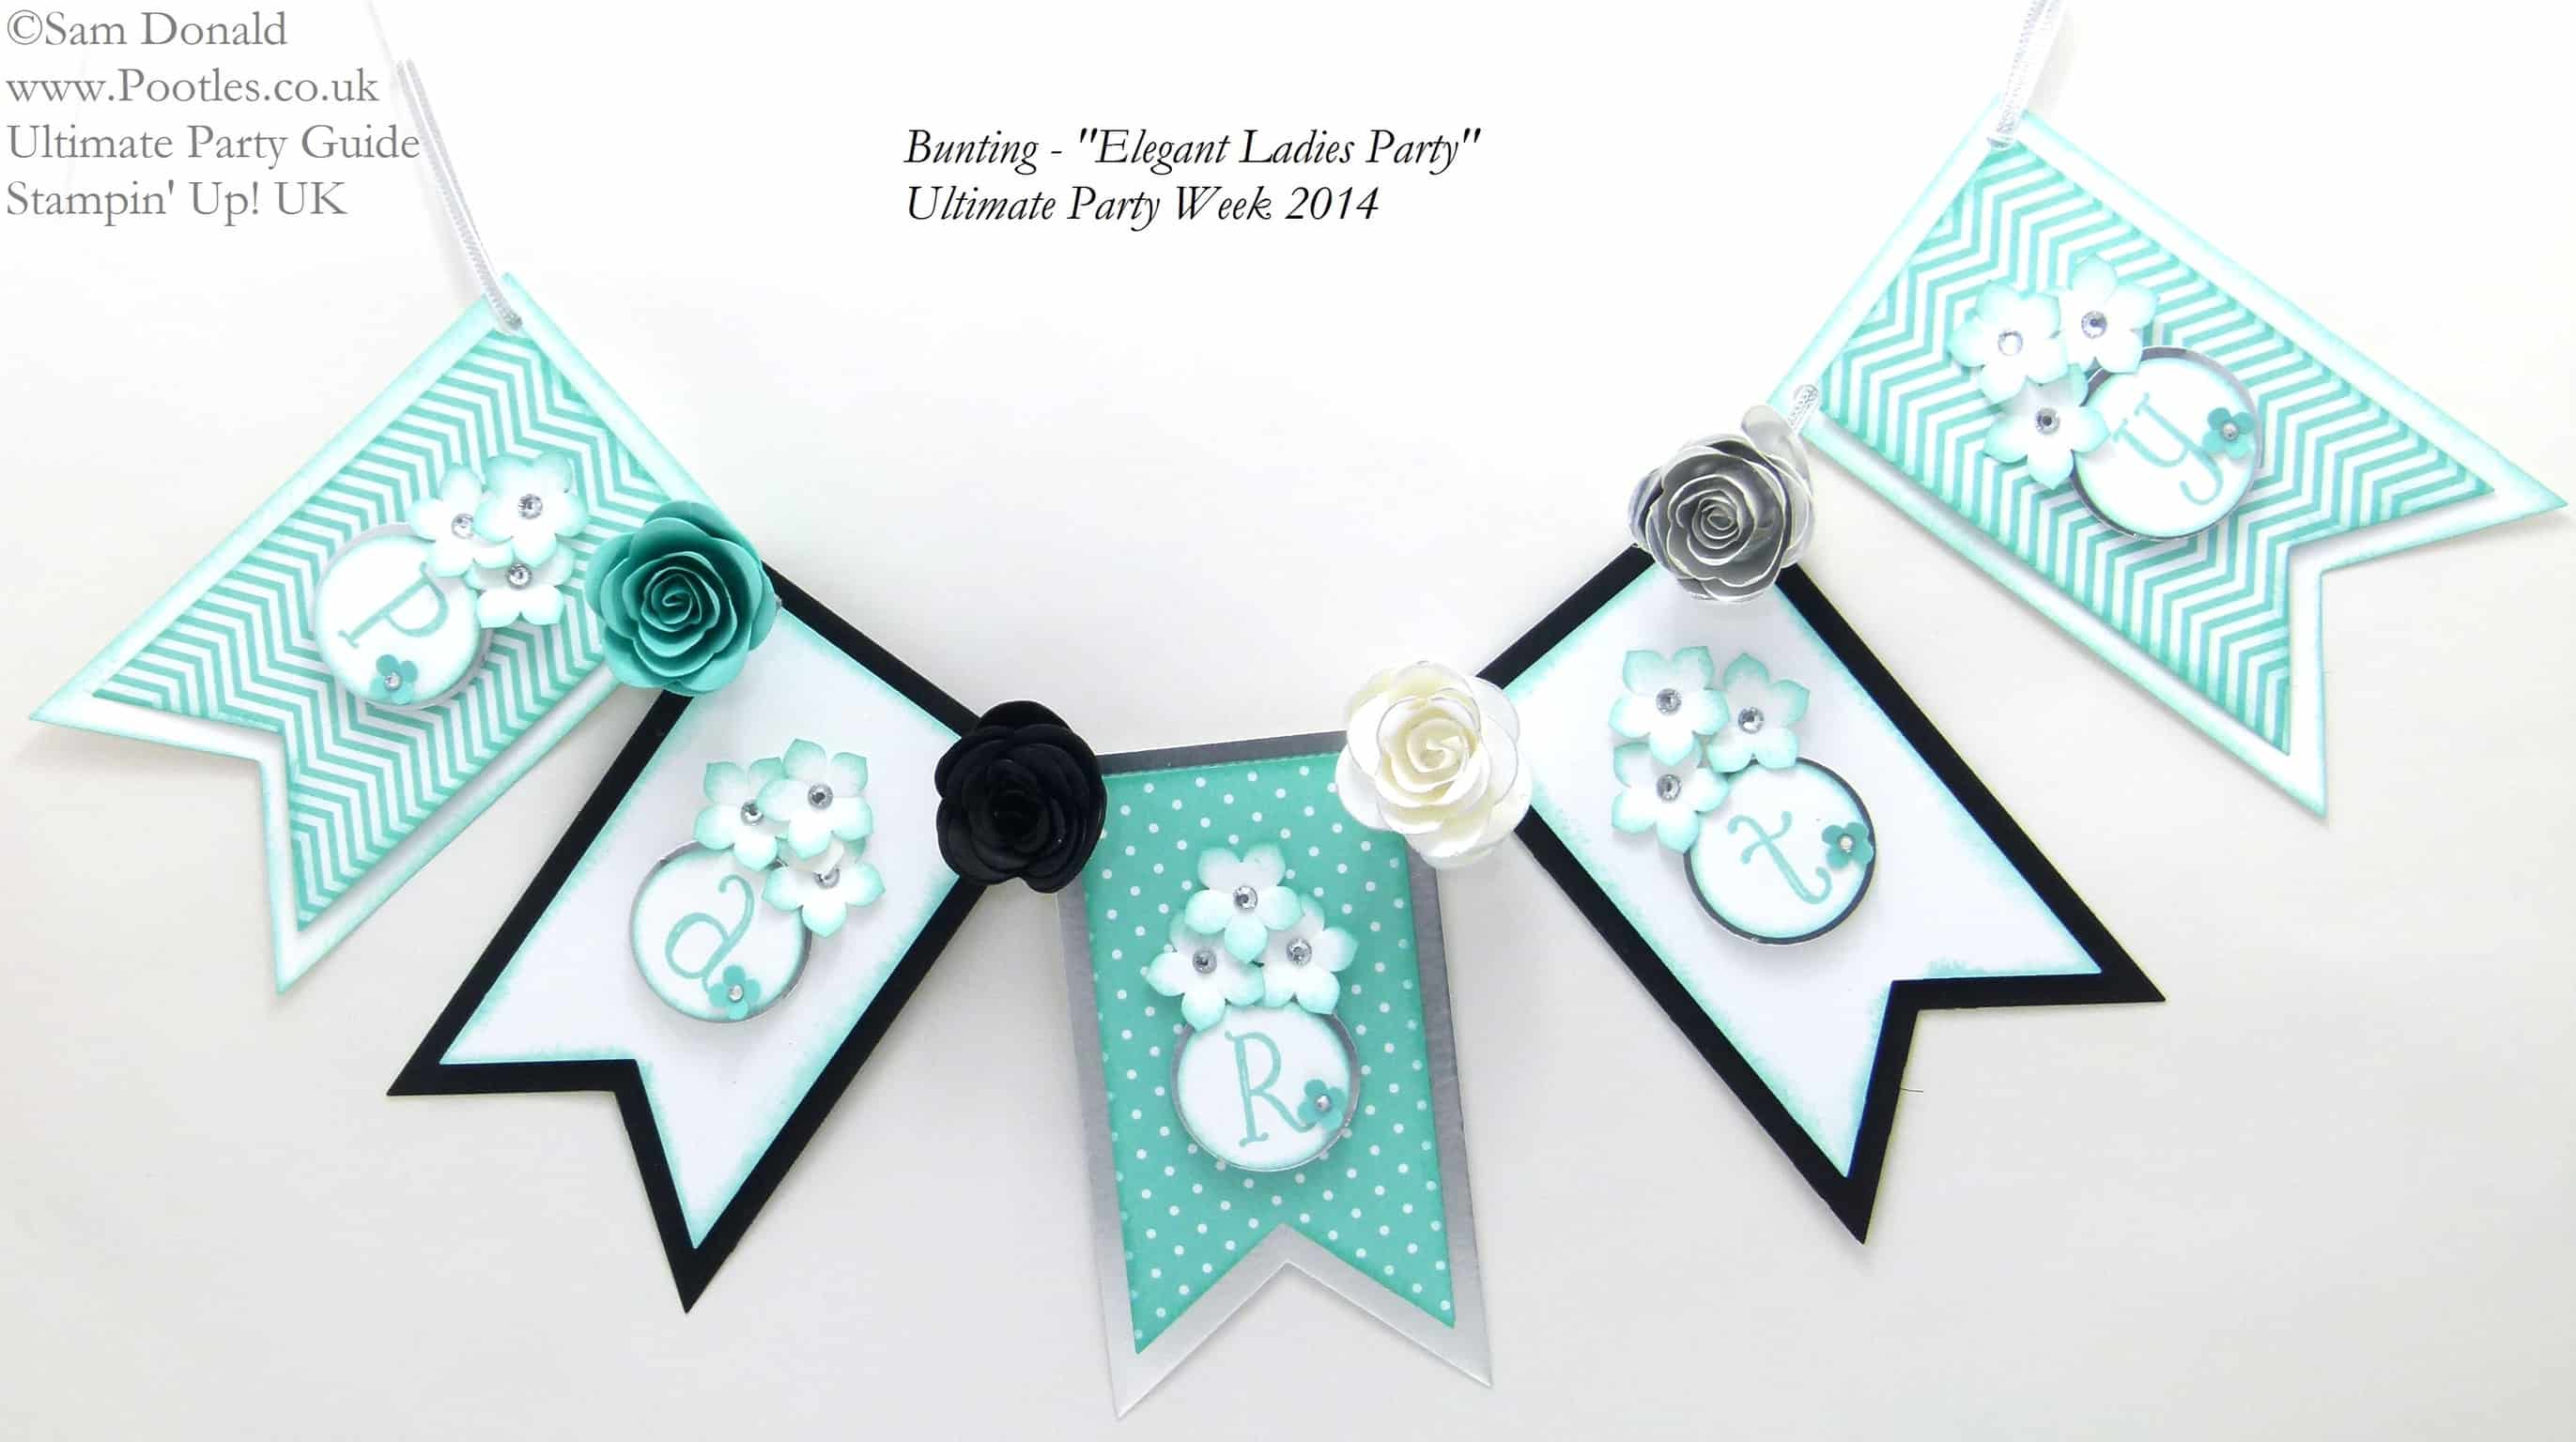 ULTIMATE PARTY WEEK – Bunting